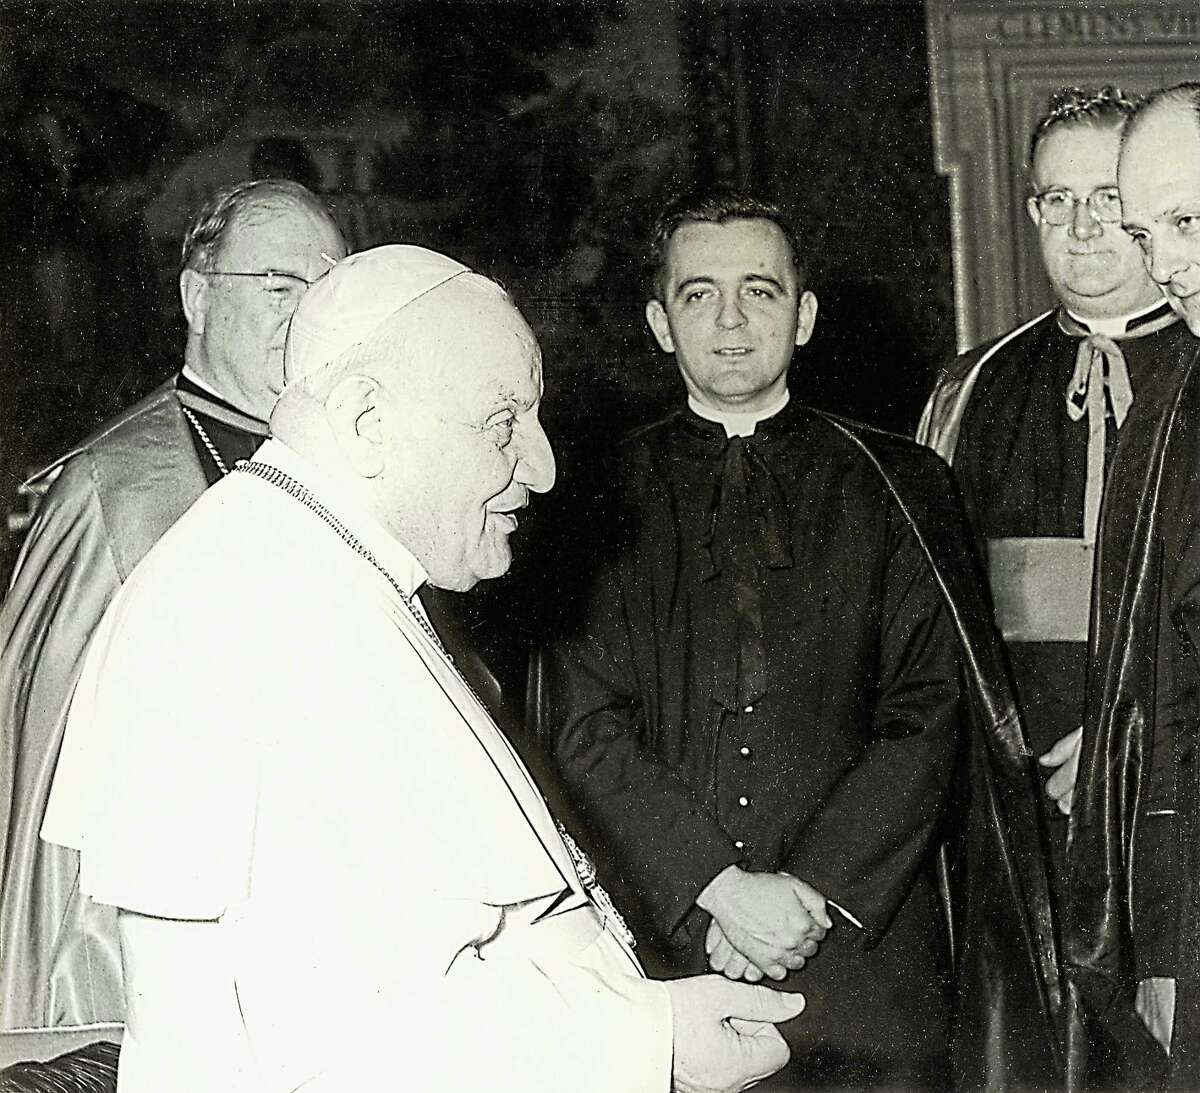 Retired Hartford Archbishop Daniel Cronin, then a priest, was an official in the Vaticanís diplomatic corps under Pope John XXIII, with whom he is shown here. Later, he was appointed Archbishop of Hartford by Pope John Paul II. (contributed photo)